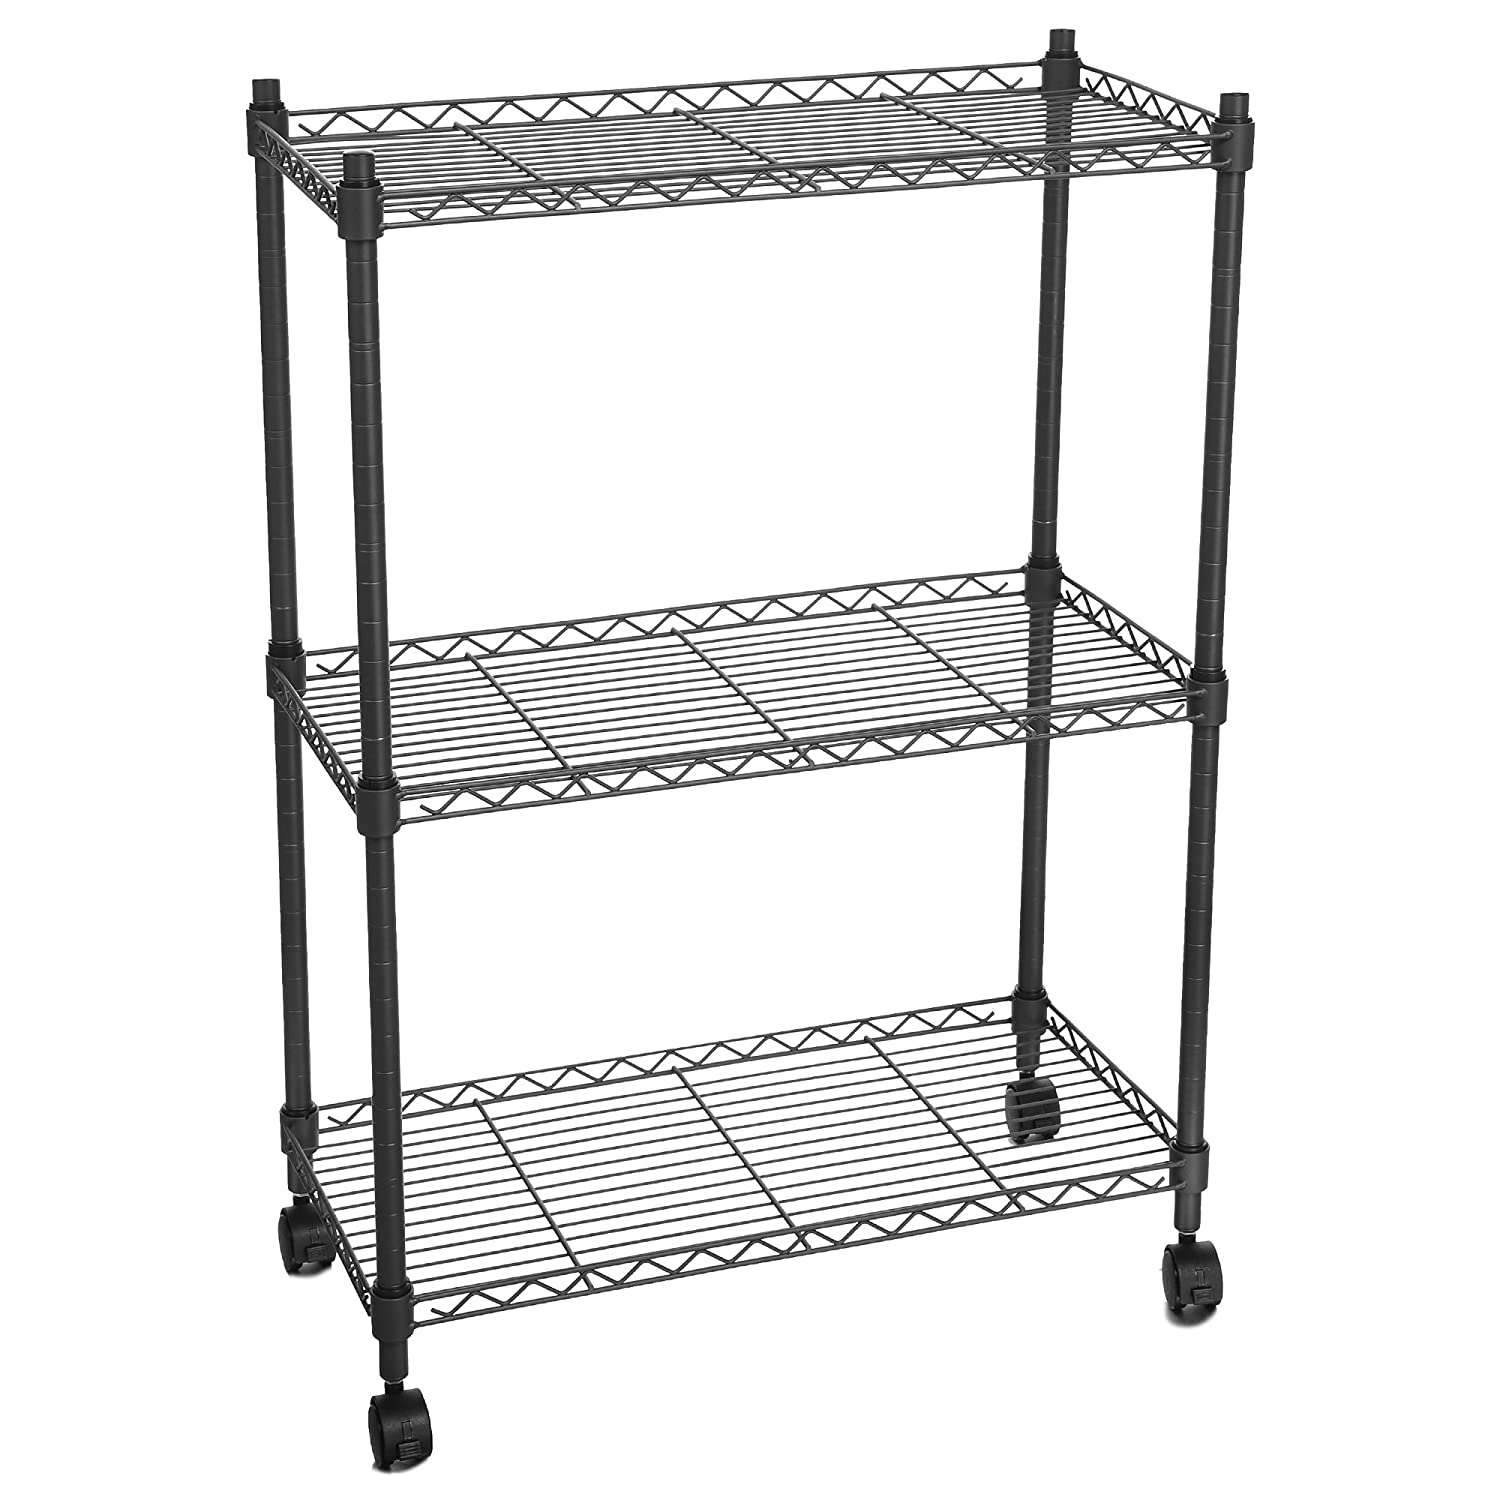 cd stand dvdn media shelf dvd storage voilamart cupboard rack e bookshelf hom bluray black